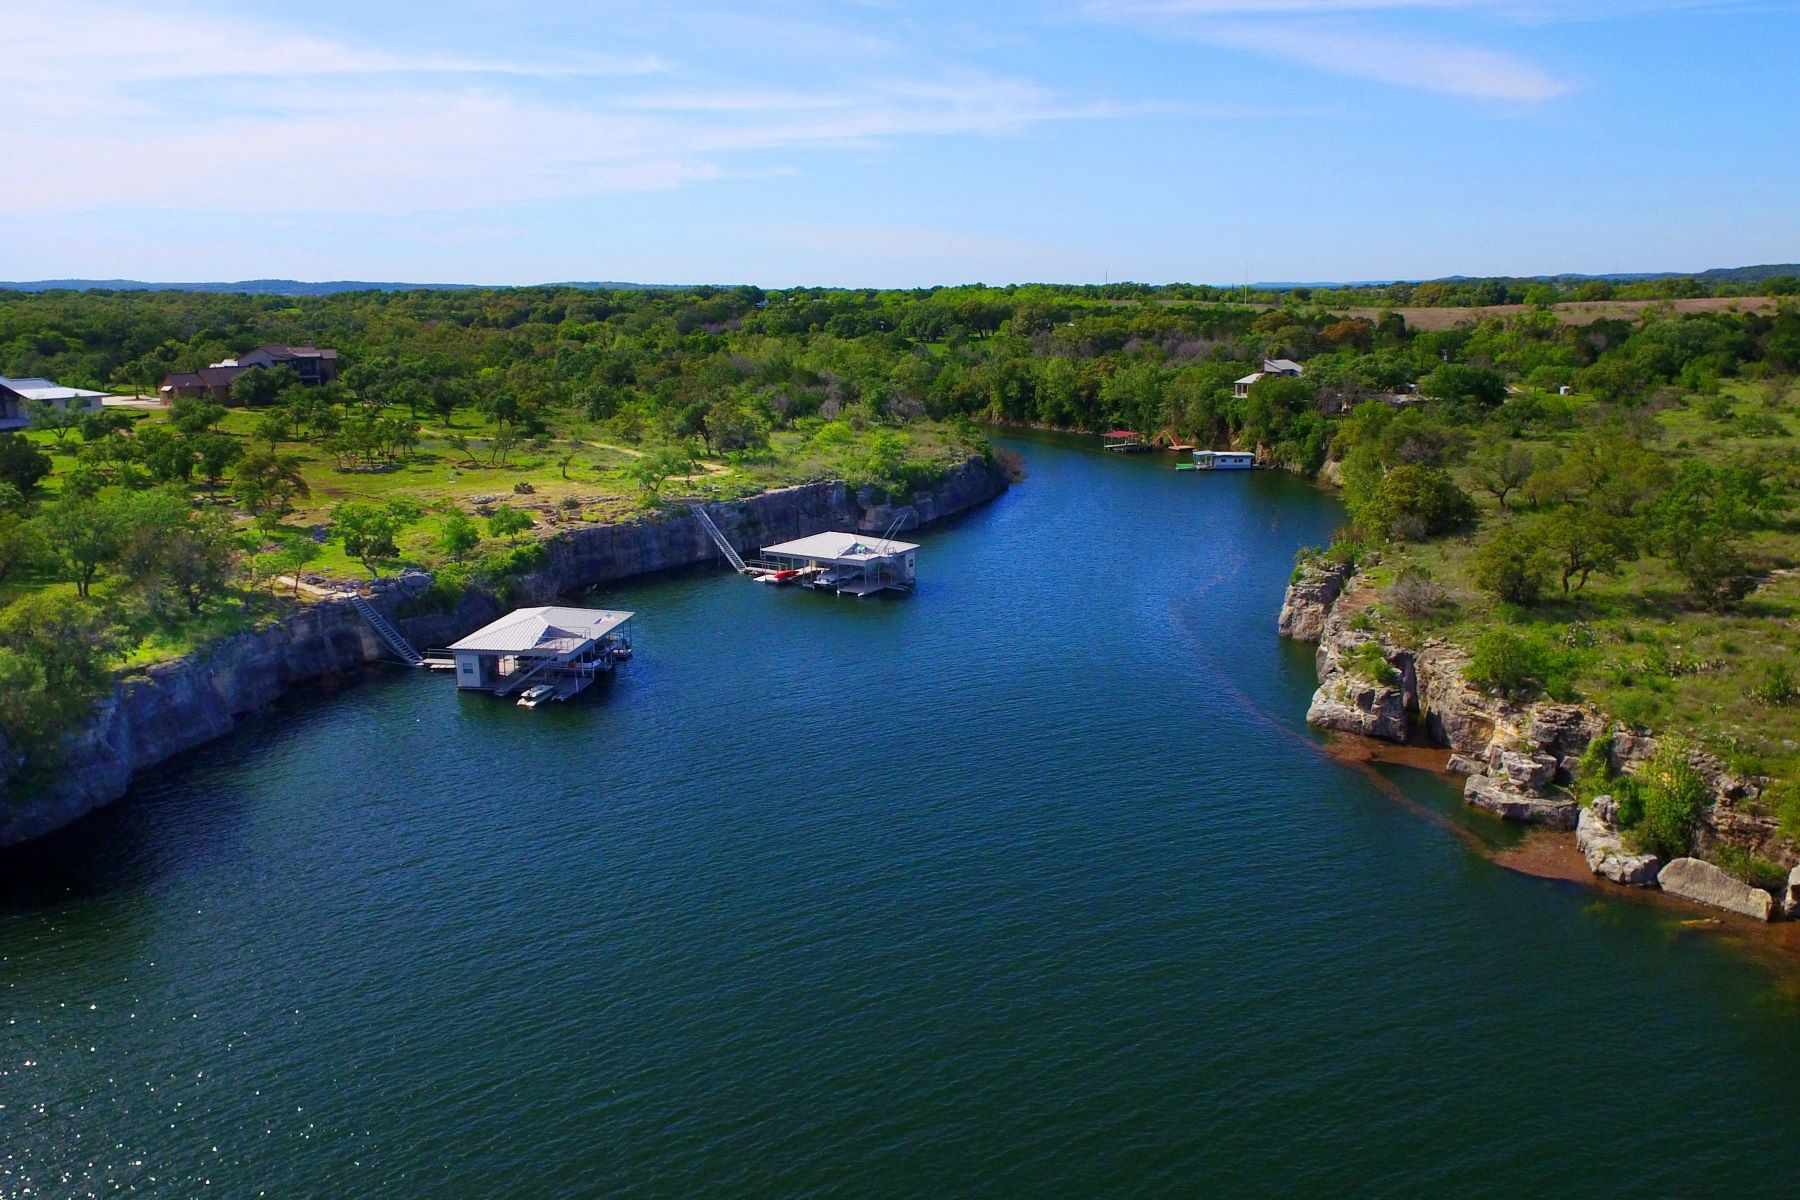 Land for Sale at Beautiful Lot in a Tranquil Community 22709 Mary Nell Ln, Spicewood, Texas, 78669 United States